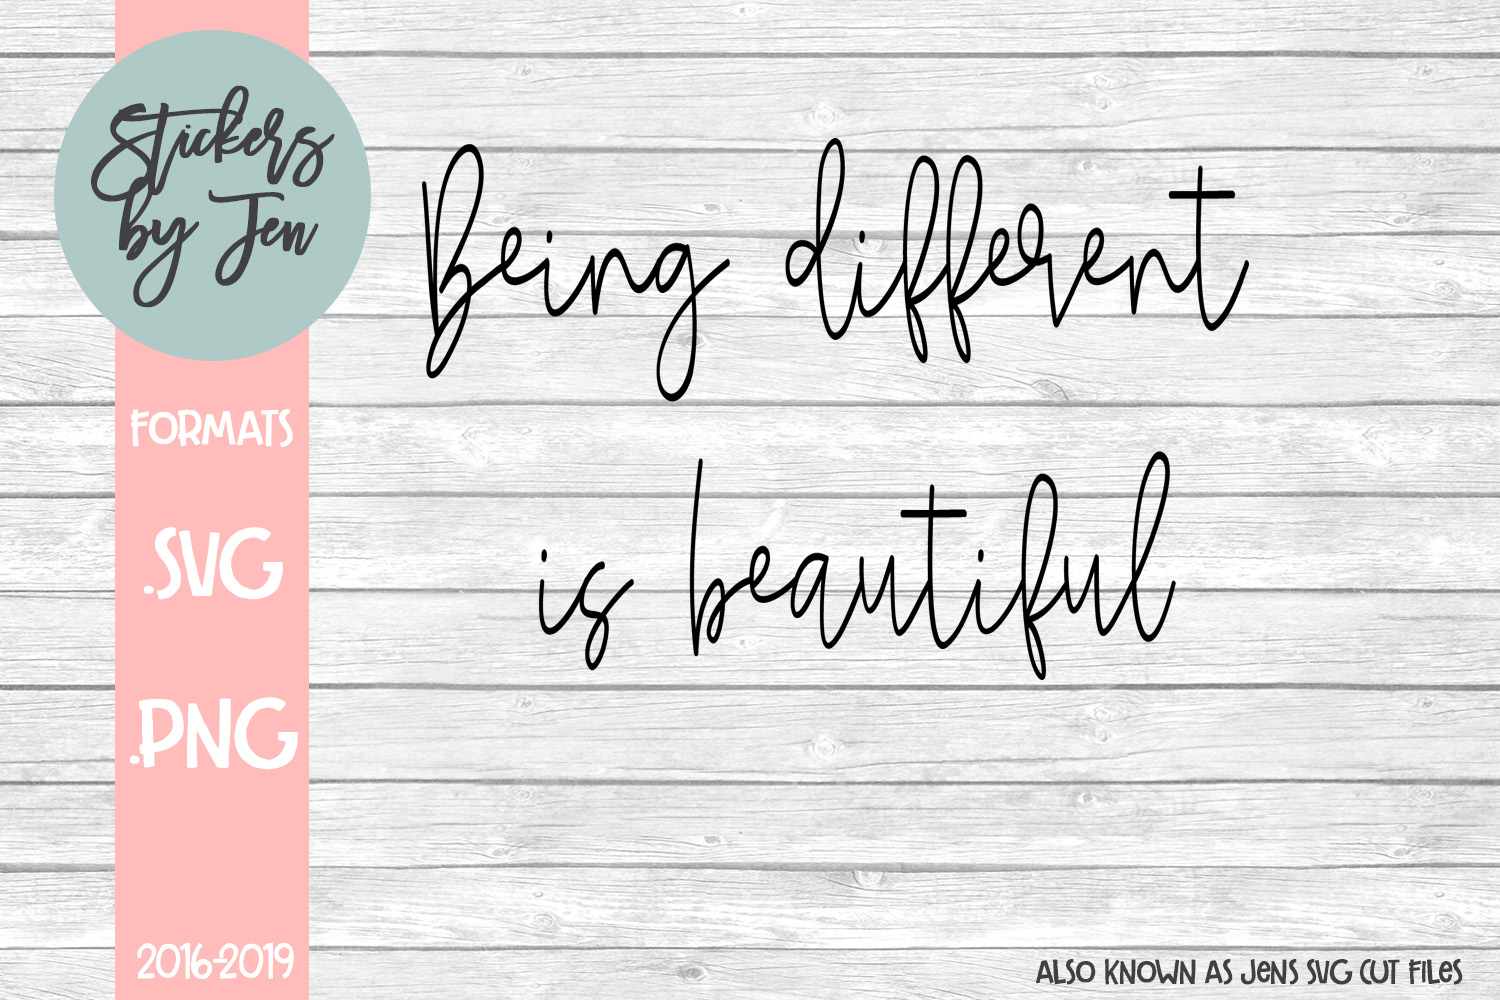 Download Free Being Different Is Beautiful Svg Graphic By Stickers By Jennifer for Cricut Explore, Silhouette and other cutting machines.